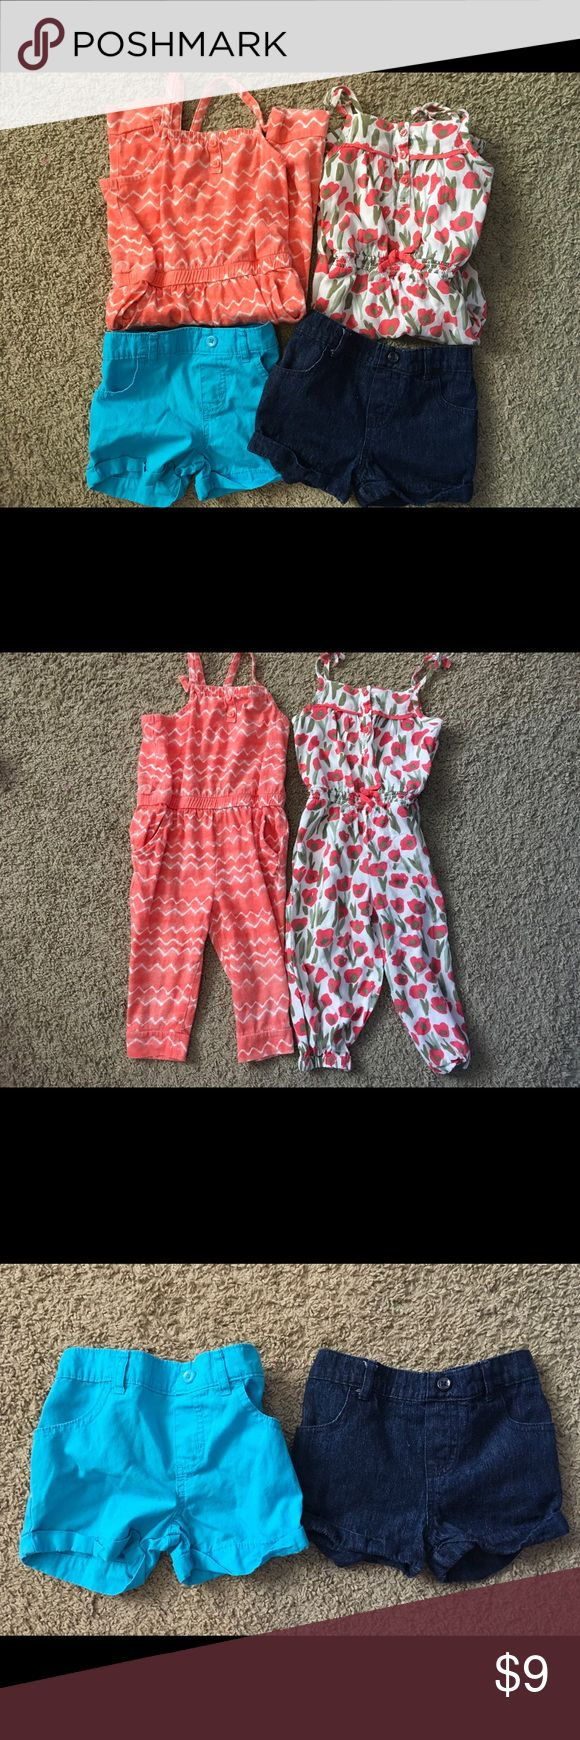 Bundled 2 girls jumpsuits, 2 shorts Size 3T Bundle of two girls jumpsuits, and 2 girls shorts size 3T.  Jean shorts were never worn, as the little princess did not like them.  The jumpsuits have been worn a few times.  Label on one of the jumpsuits melted in too hot of dryer thanks to dear old Dad. Old Navy Bottoms Jumpsuits & Rompers